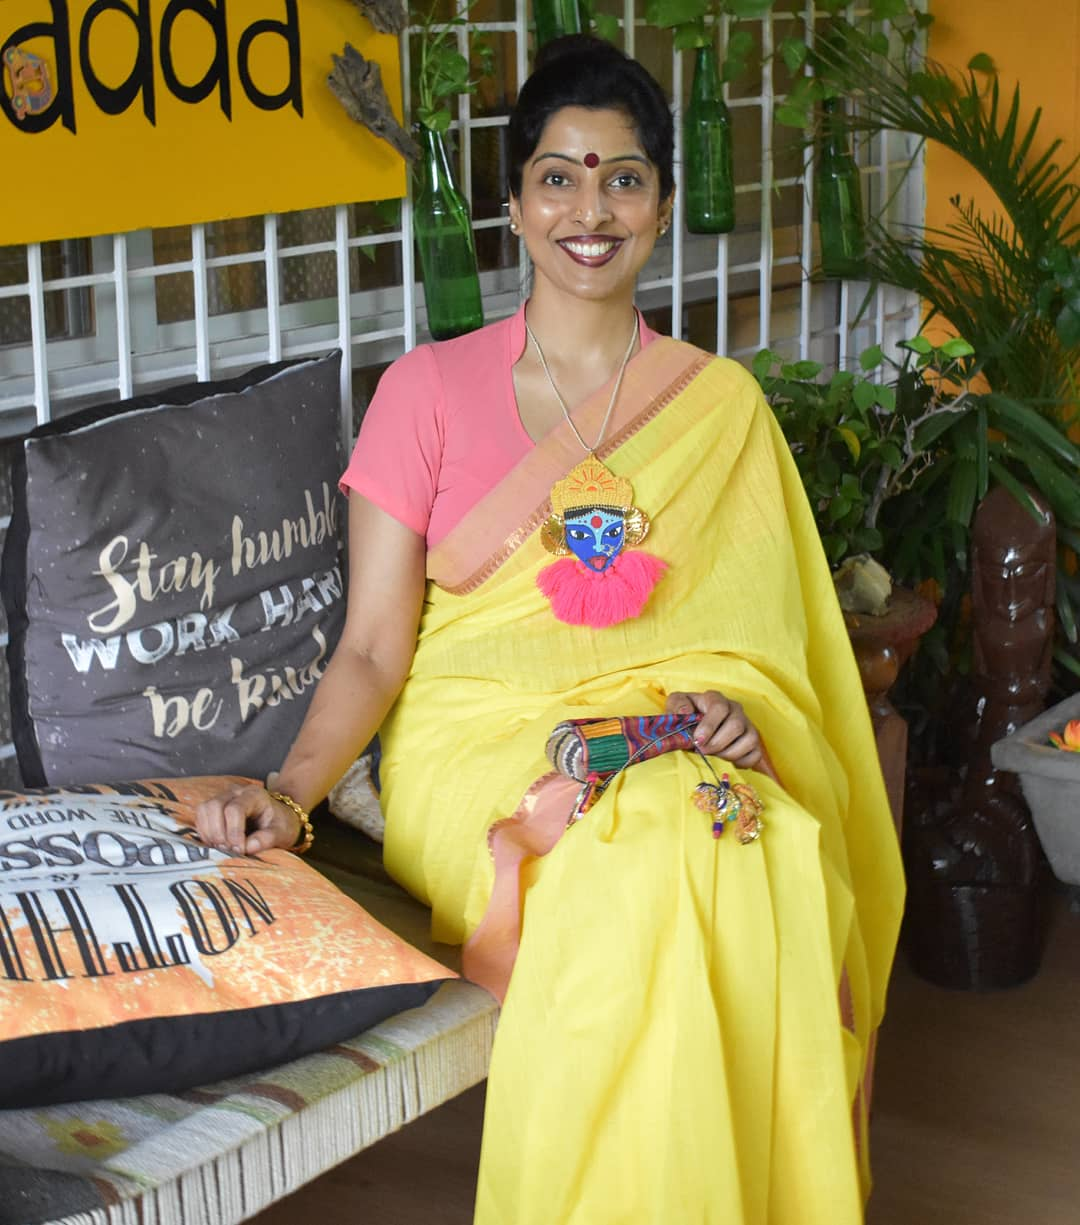 Read more about the article Reshma Kadvath: Waste is the new wealth